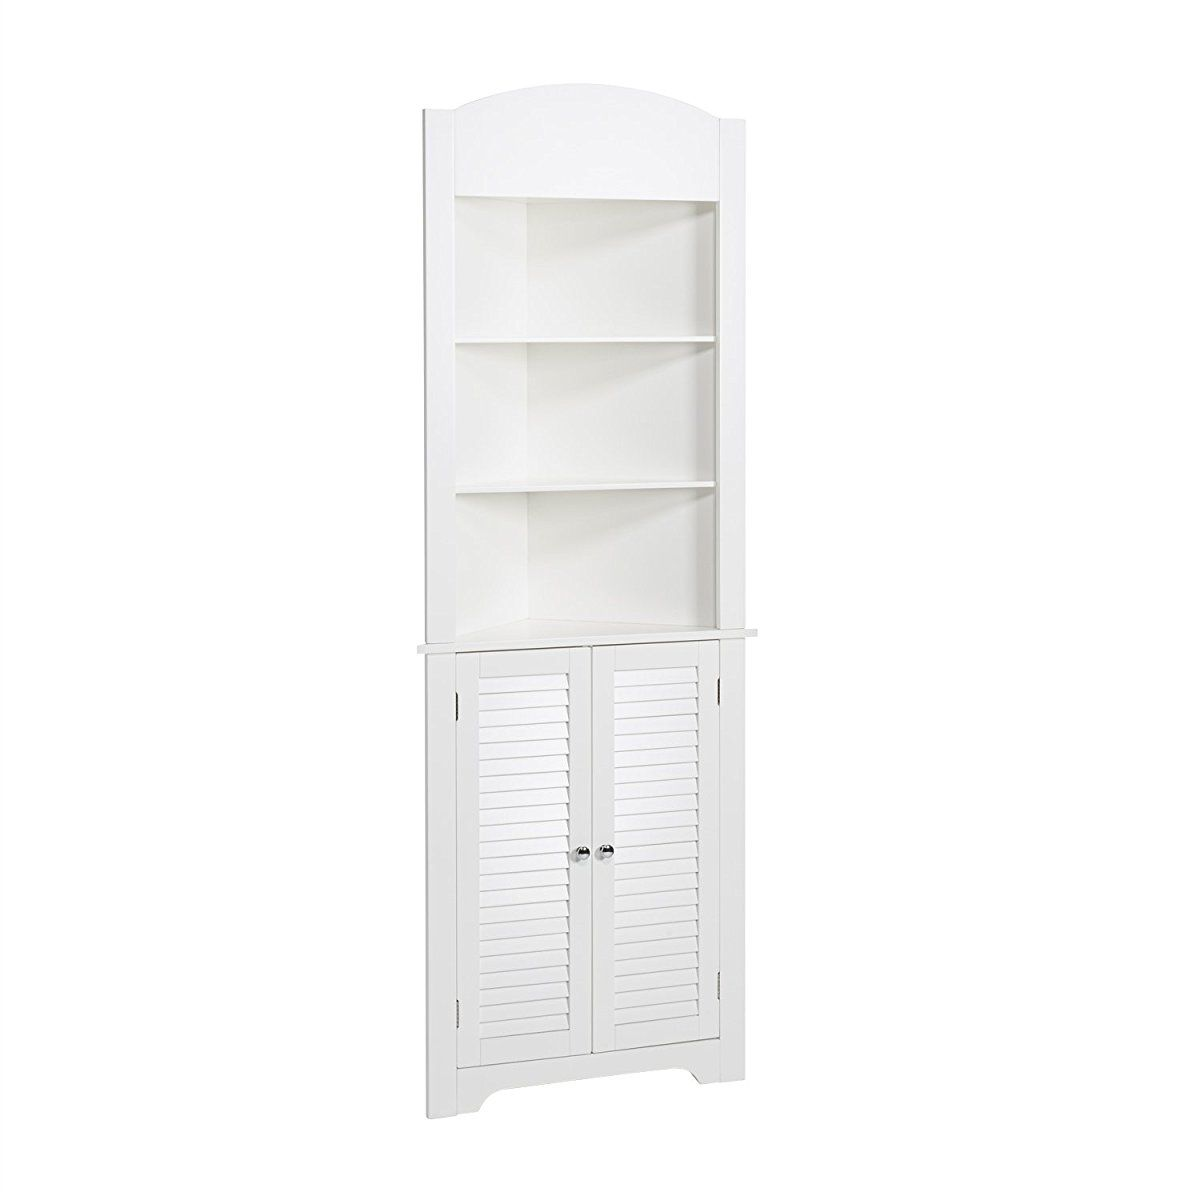 RiverRidge Home Ellsworth Collection Tall Corner Cabinet, White ...